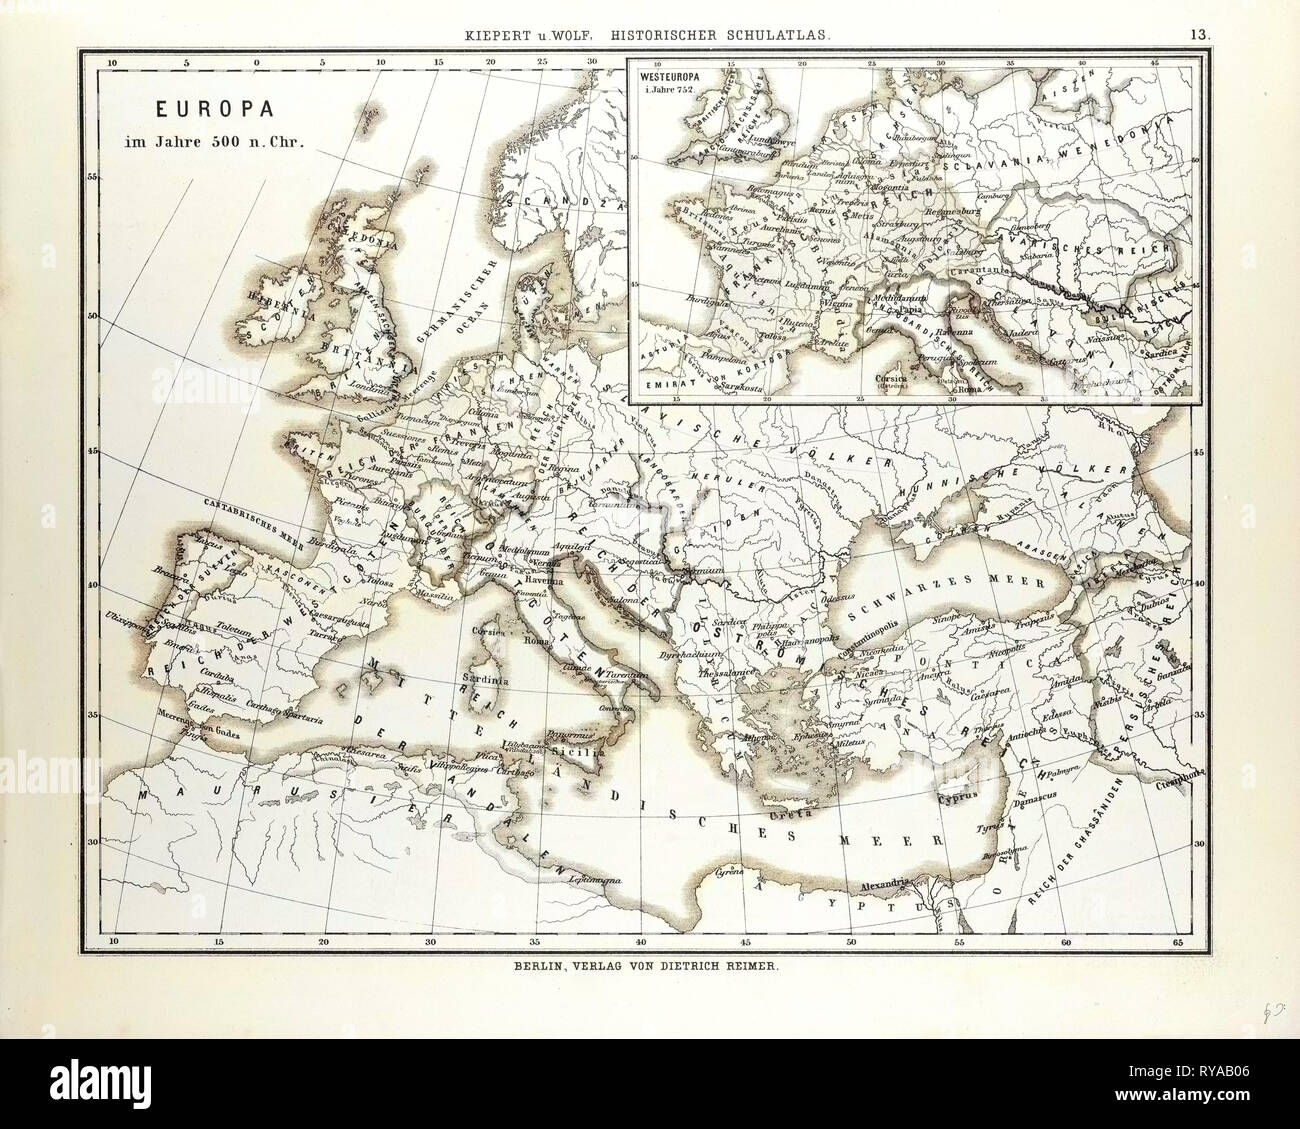 Map Of Europe In 500 A D Stock Photo Alamy